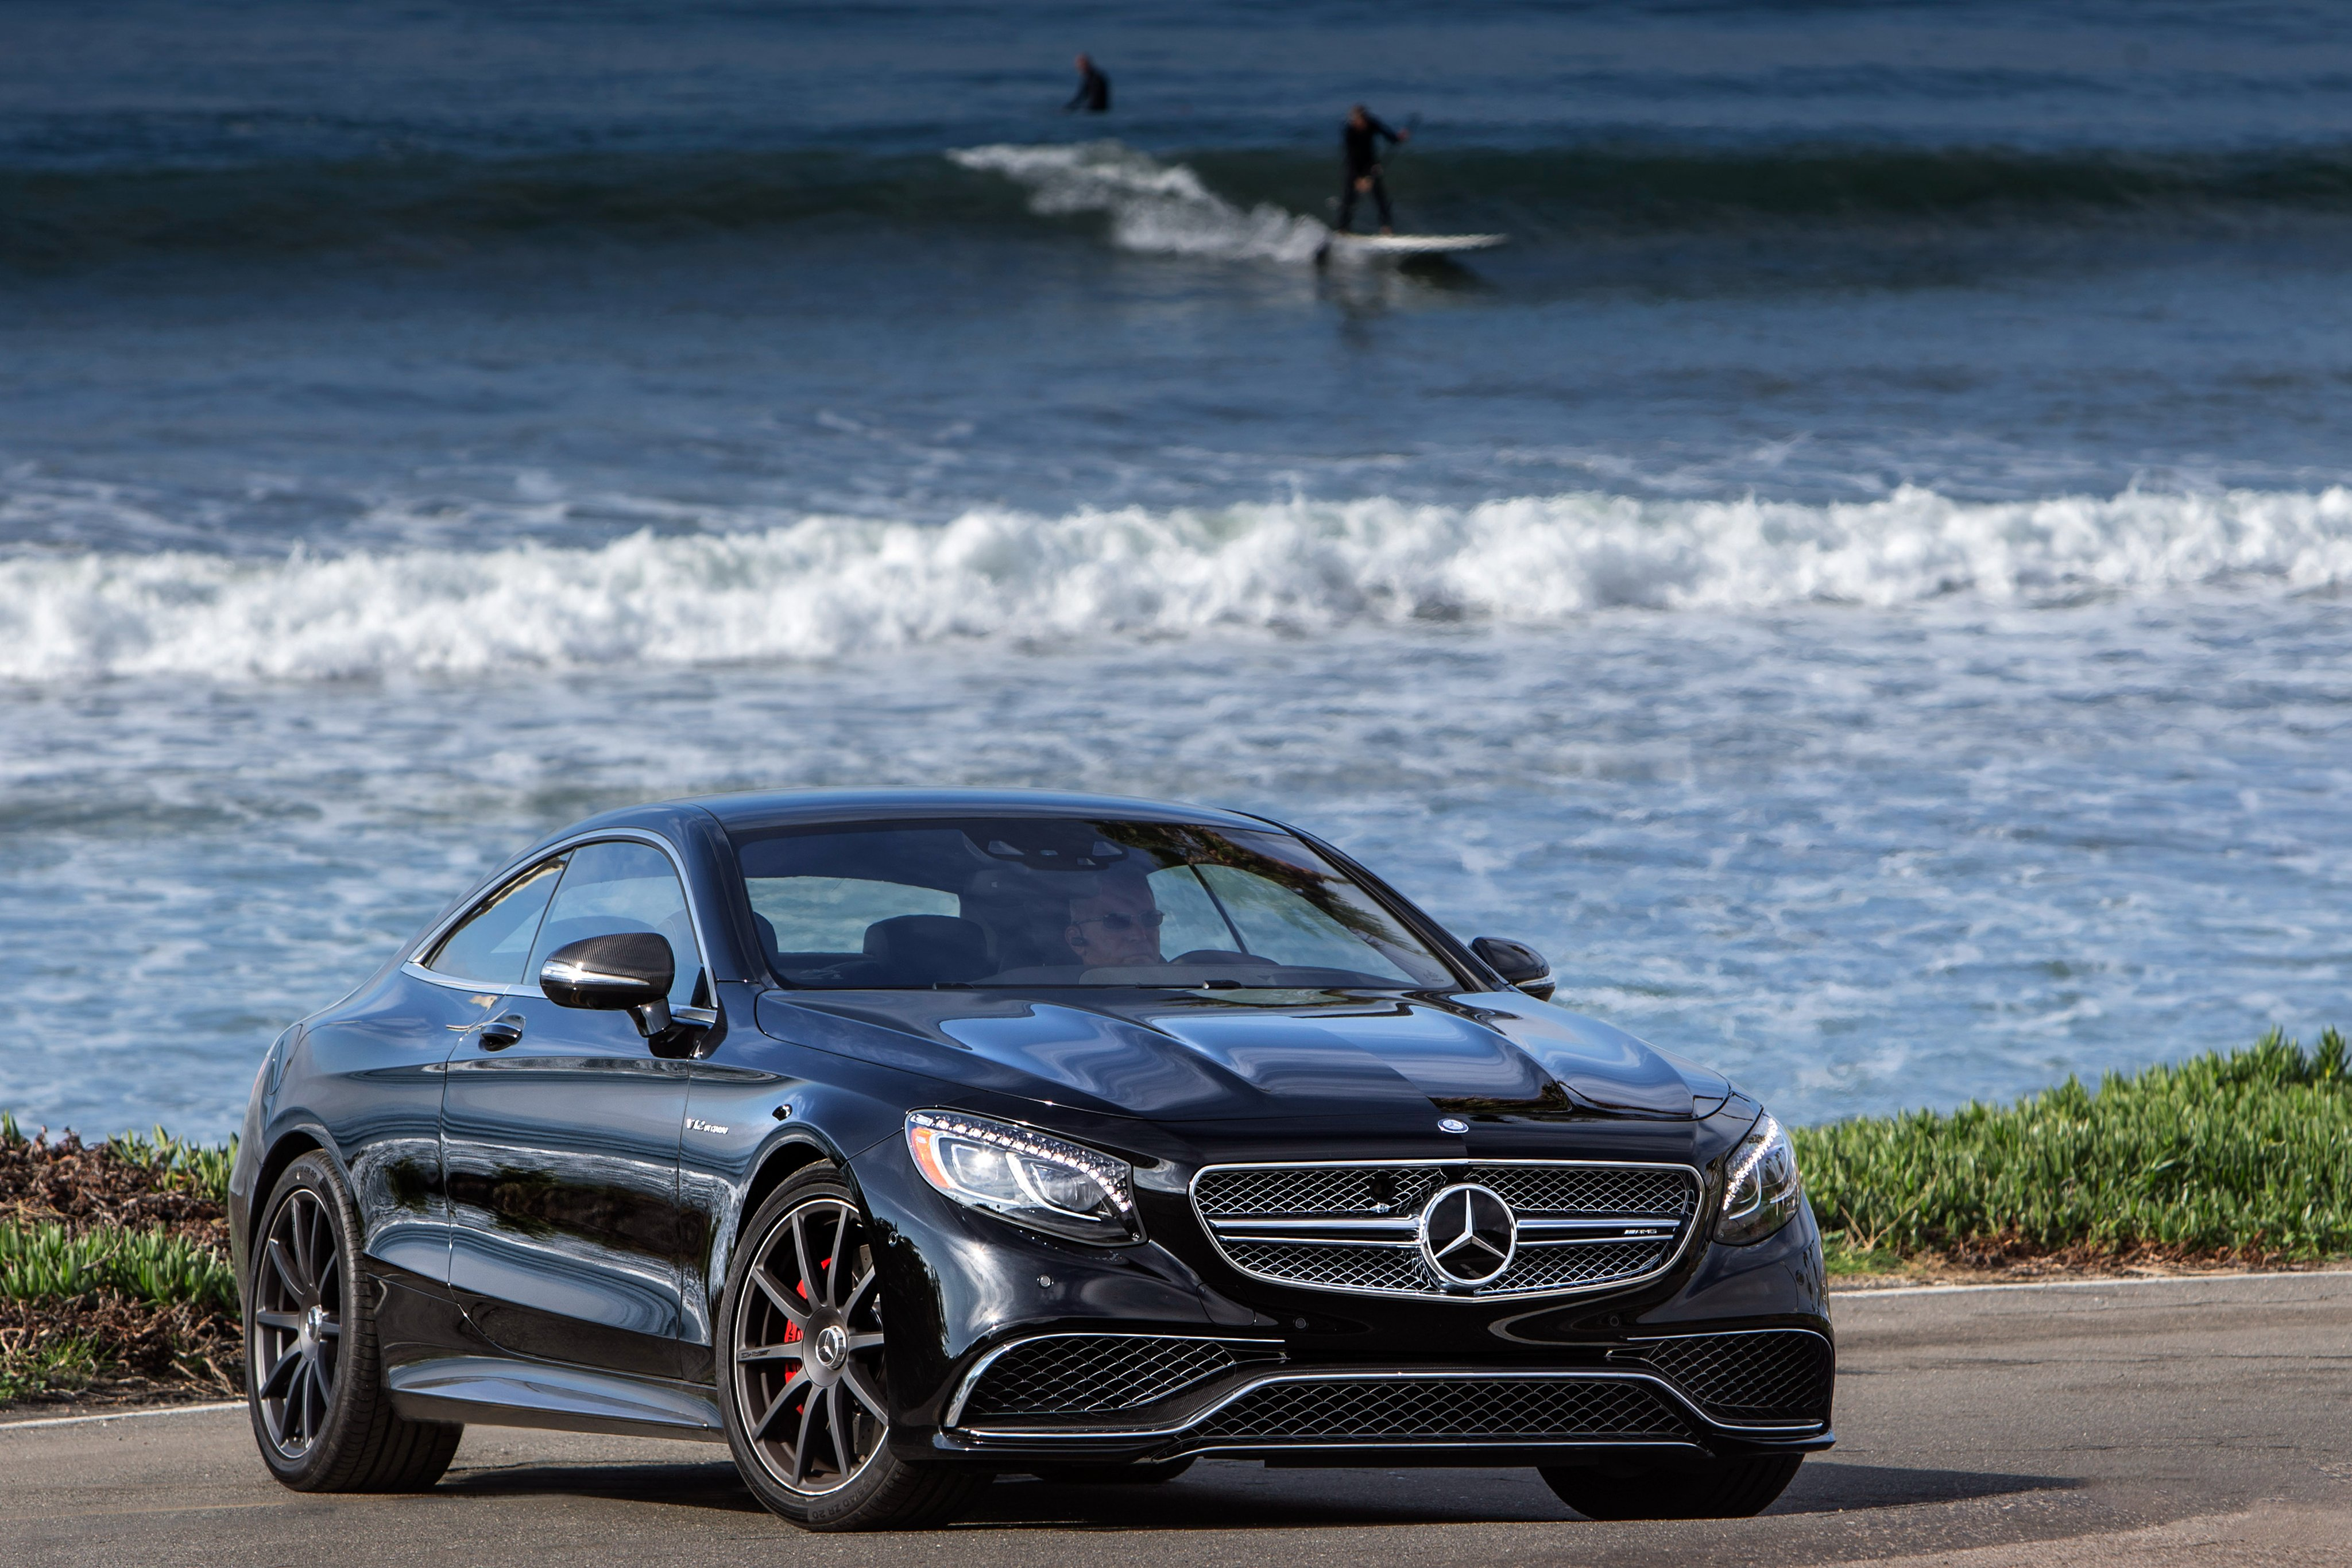 2015 mercedes benz s65 amg coupe us spec c217 wallpaper 4096x2731 605317 wallpaperup